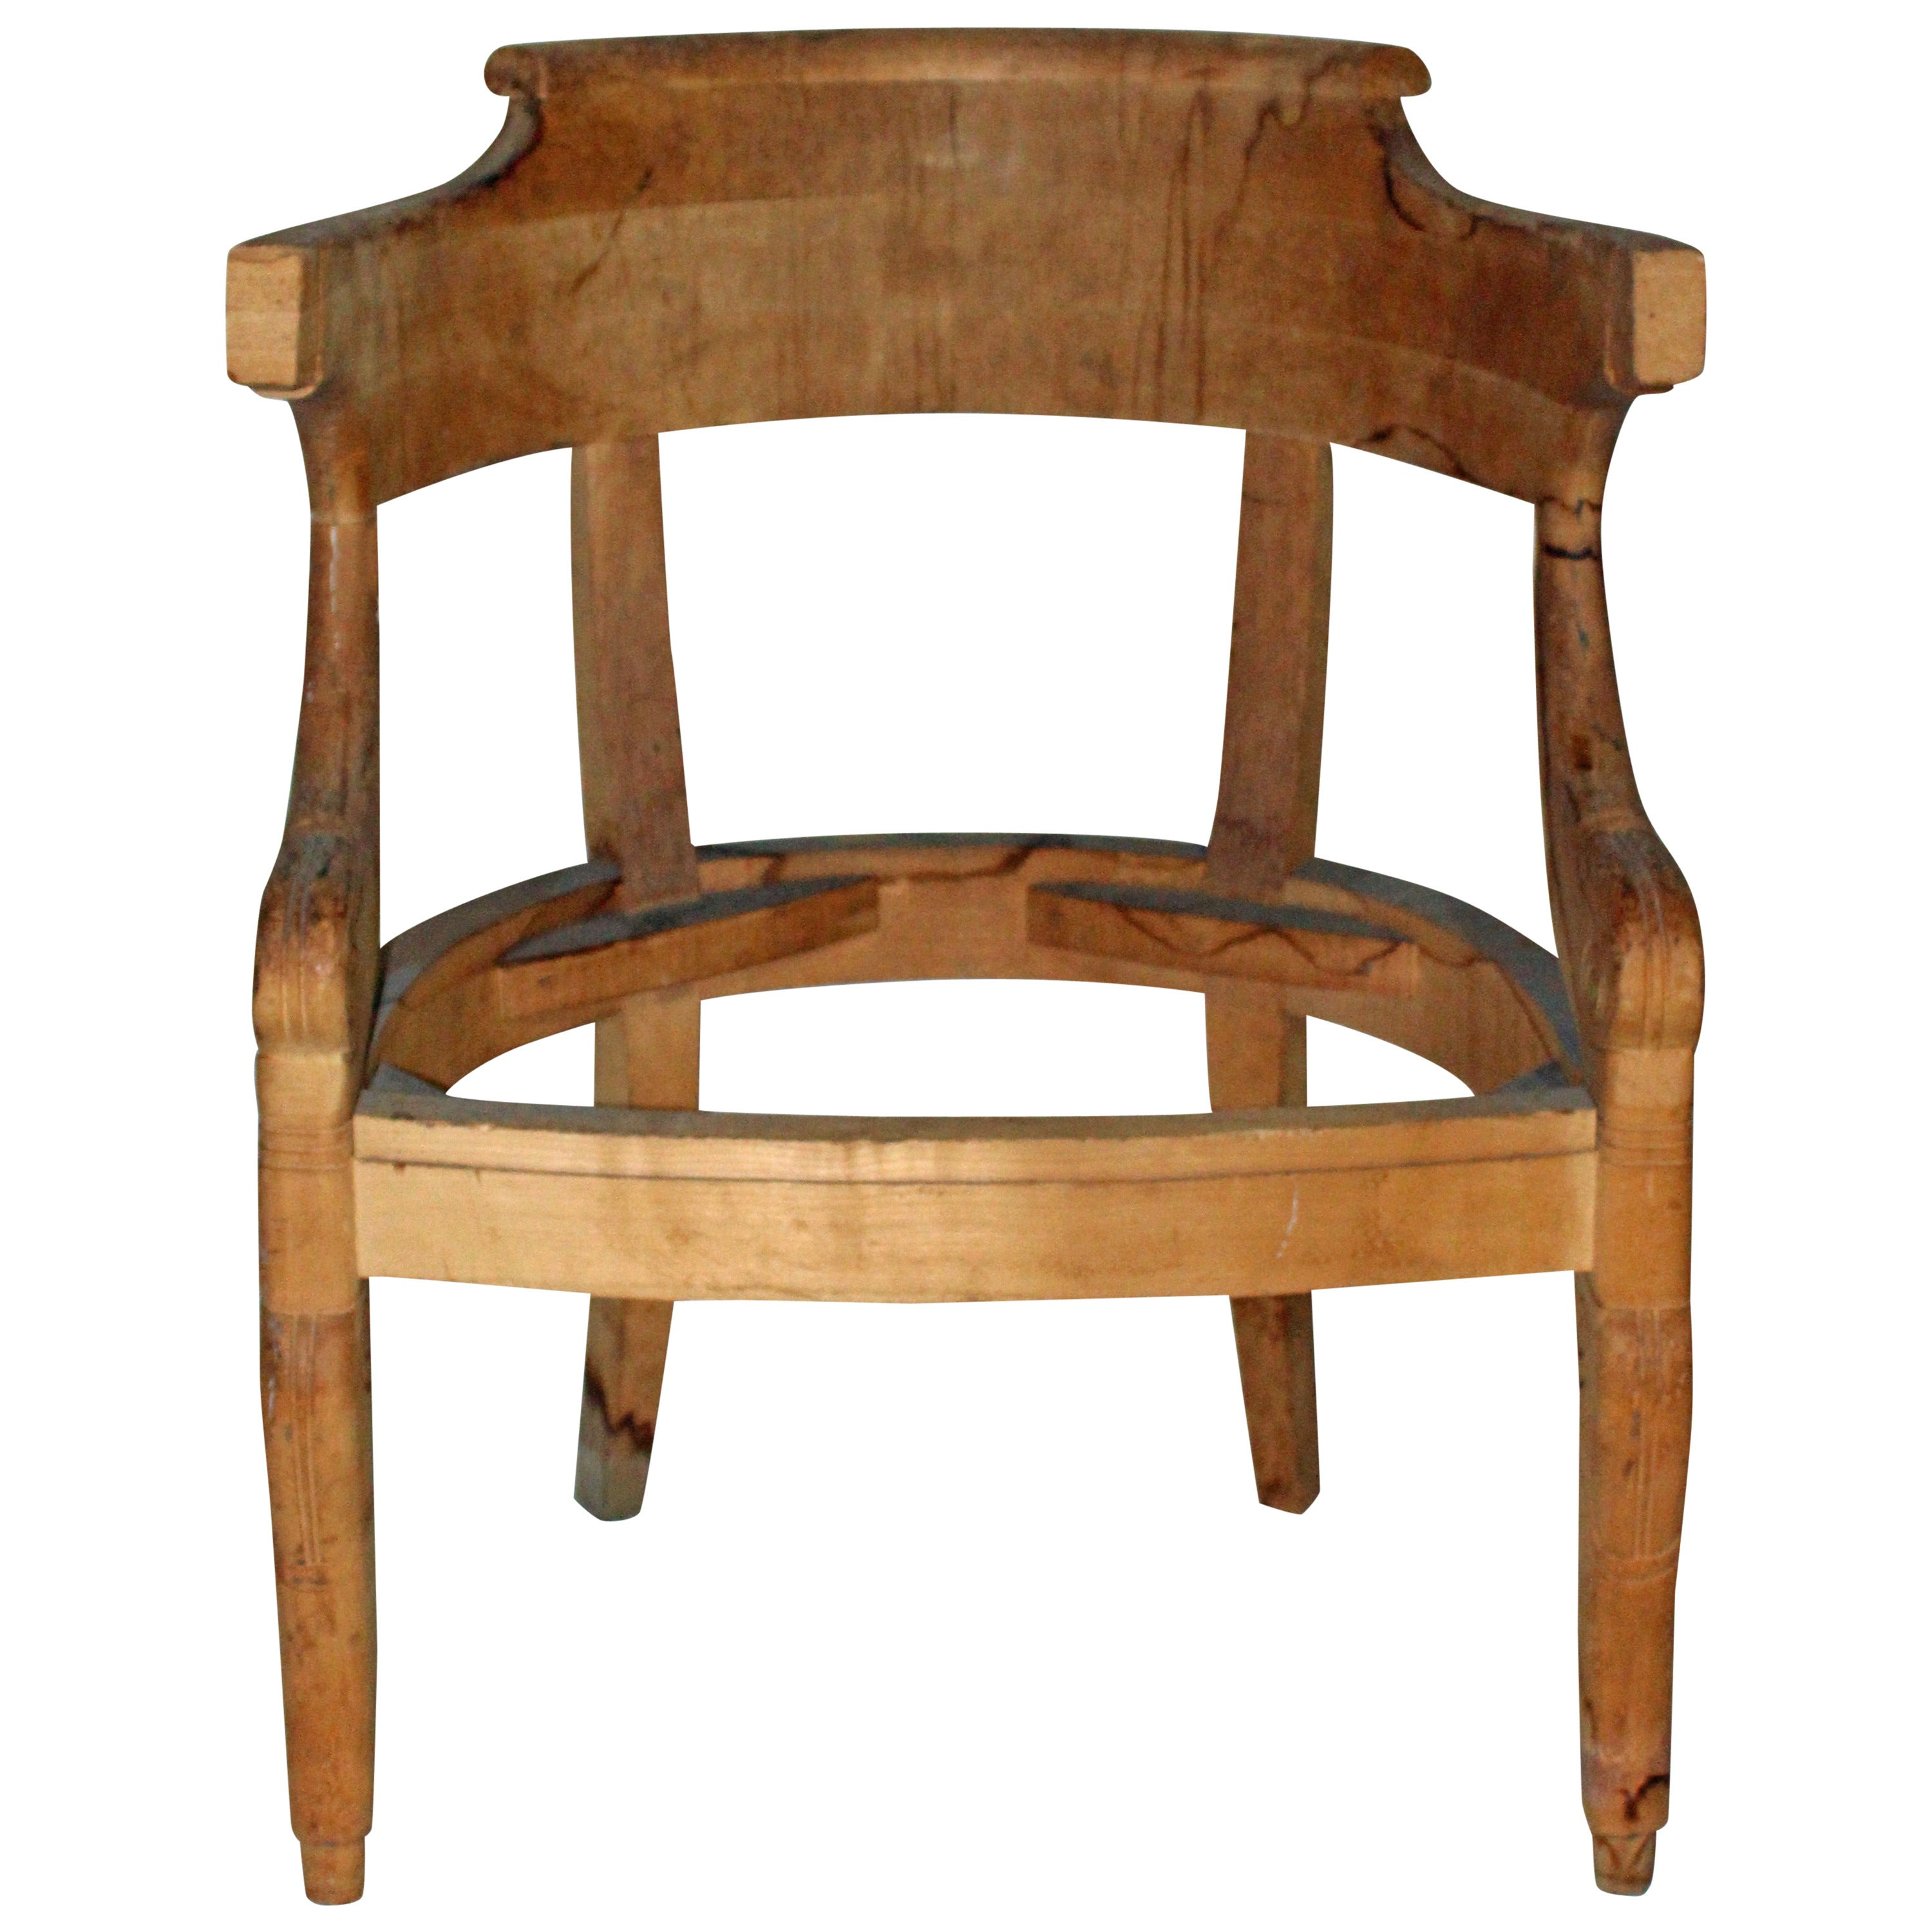 Nicely Carved and Detailed Side Chair Frames from the David Barrett Collection